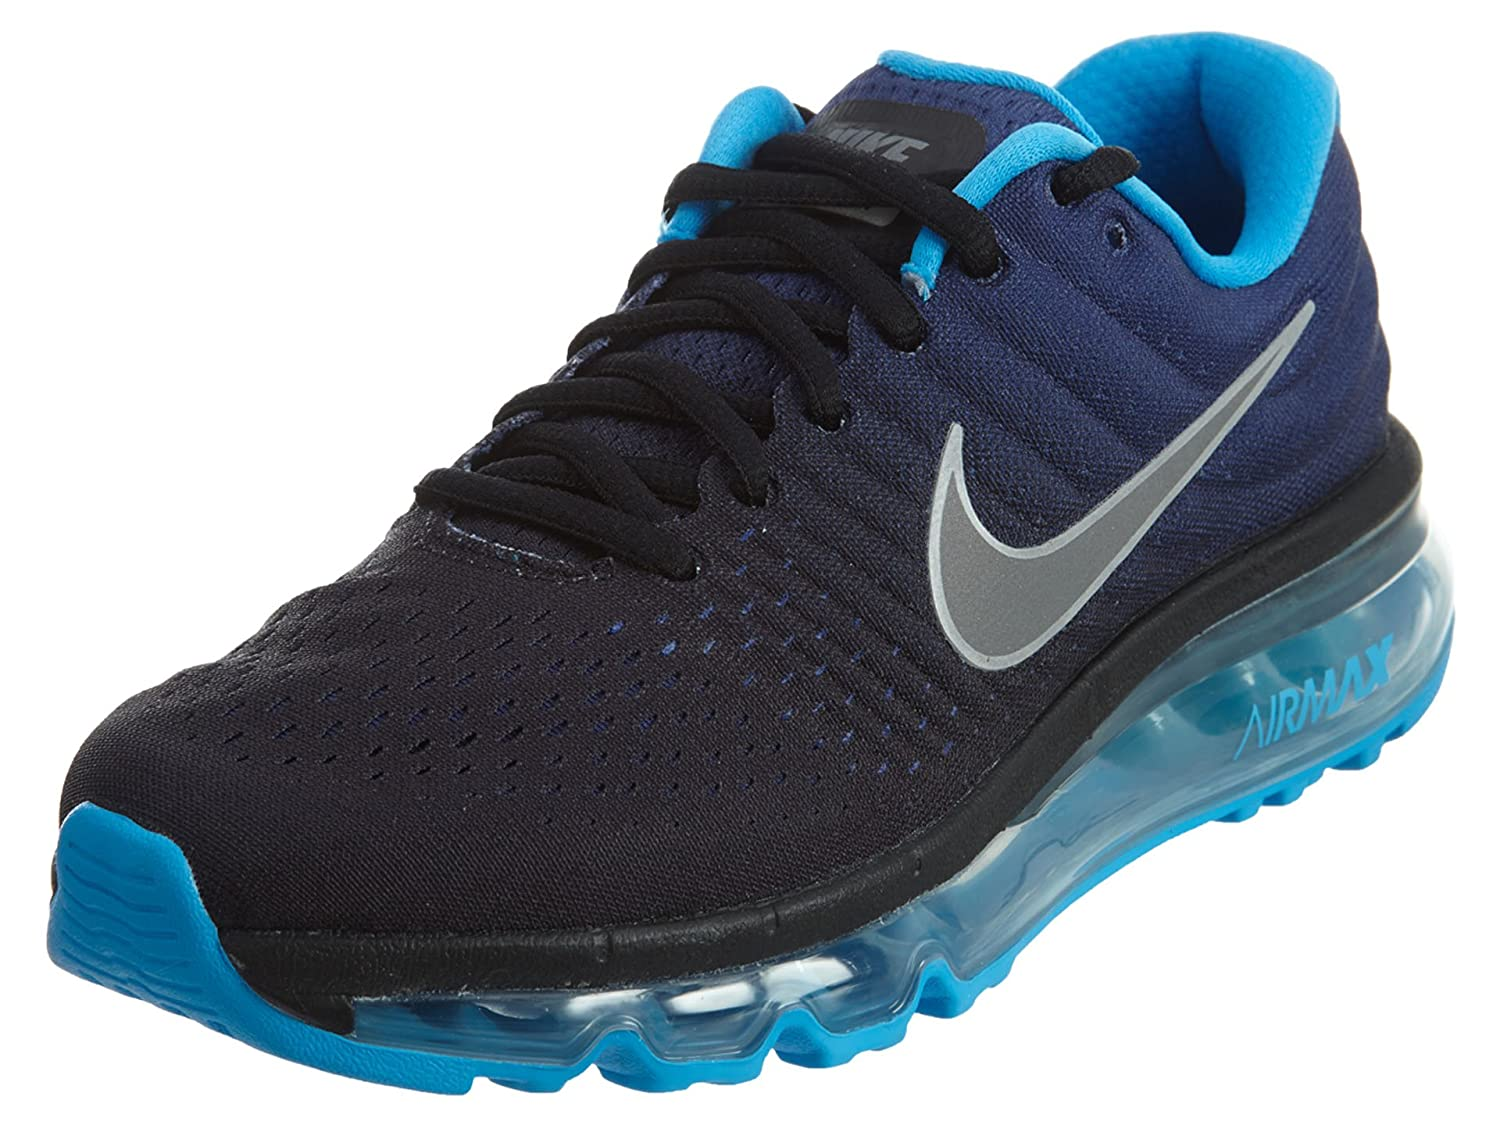 2c8c102601897f Nike Air Max 2017 Big Kids Style  851622-002 Size  6 Y US  Buy Online at  Low Prices in India - Amazon.in